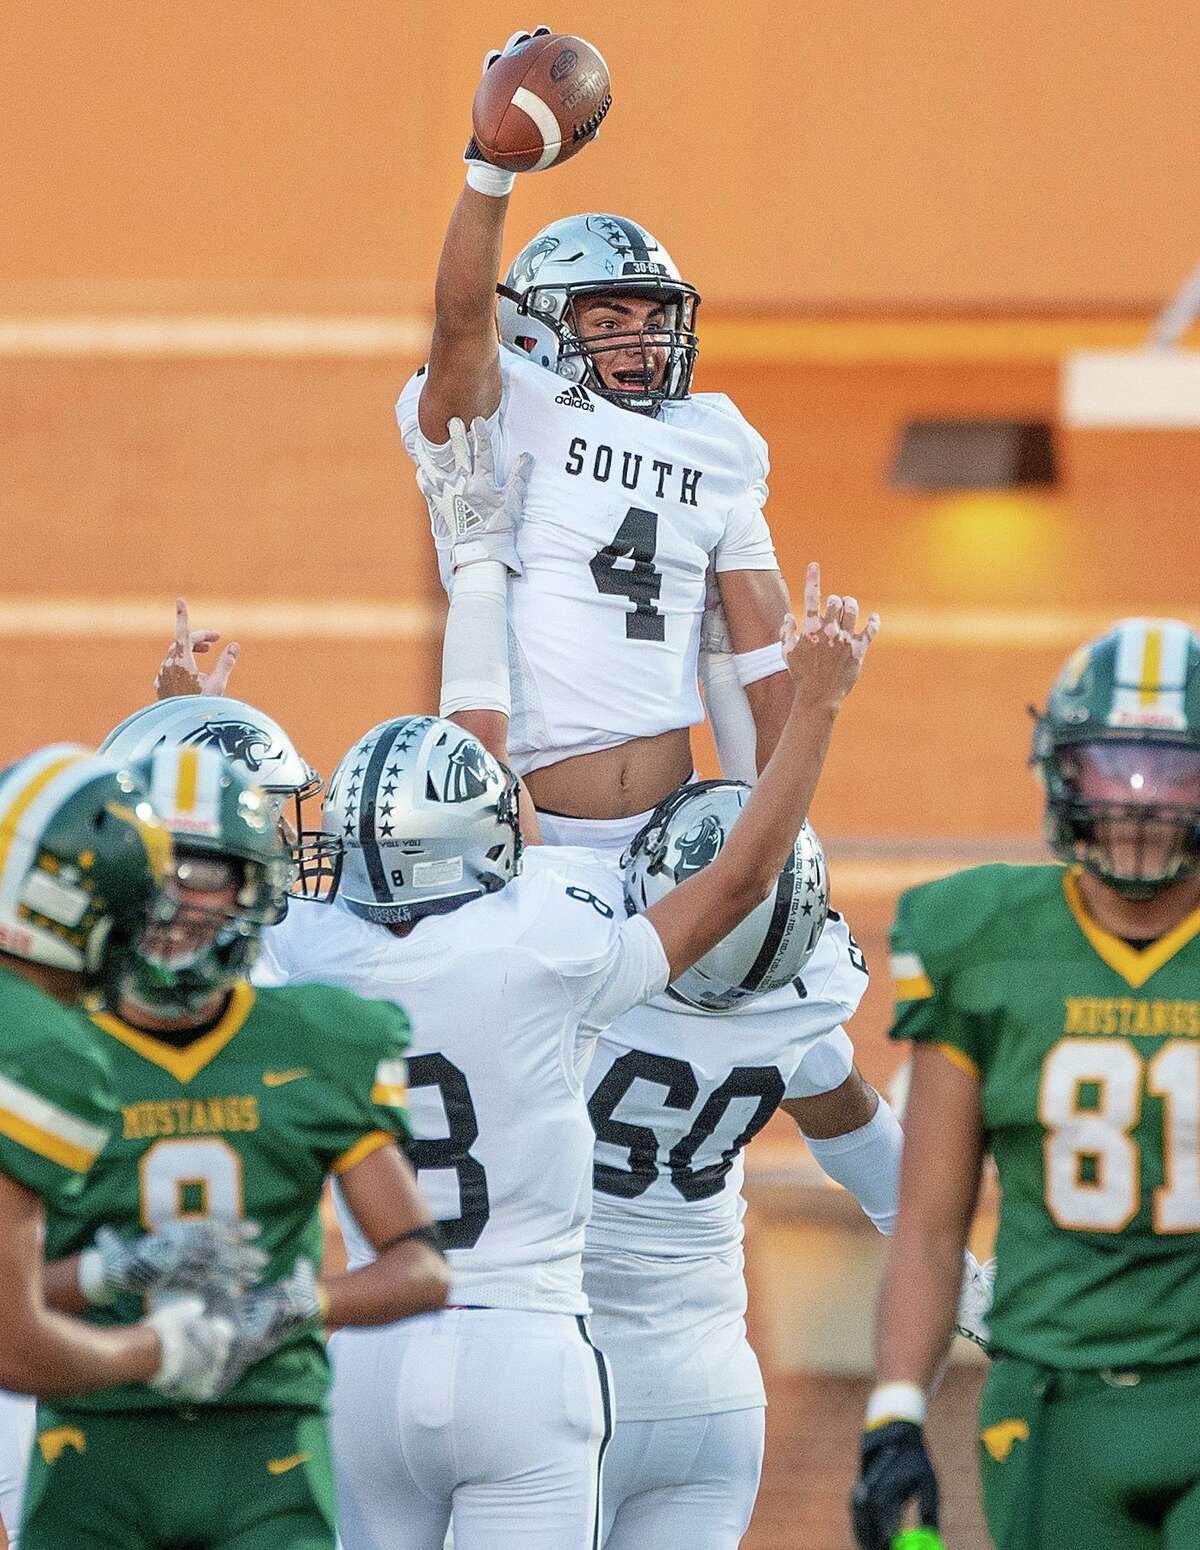 Running back Brandon Benavides scored two touchdowns as United South defeated Nixon on Thursday.